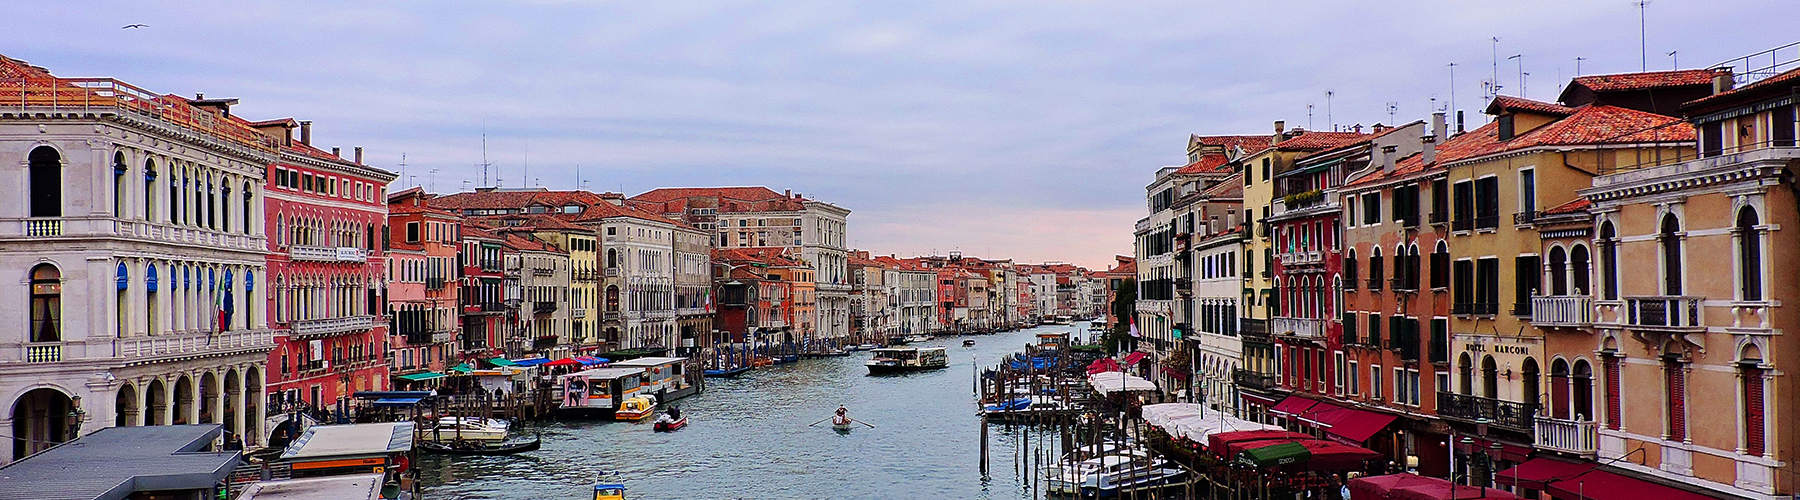 Venice – Hostels close to Grand Canal. Maps for Venice, Photos and Reviews for each hostel in Venice.